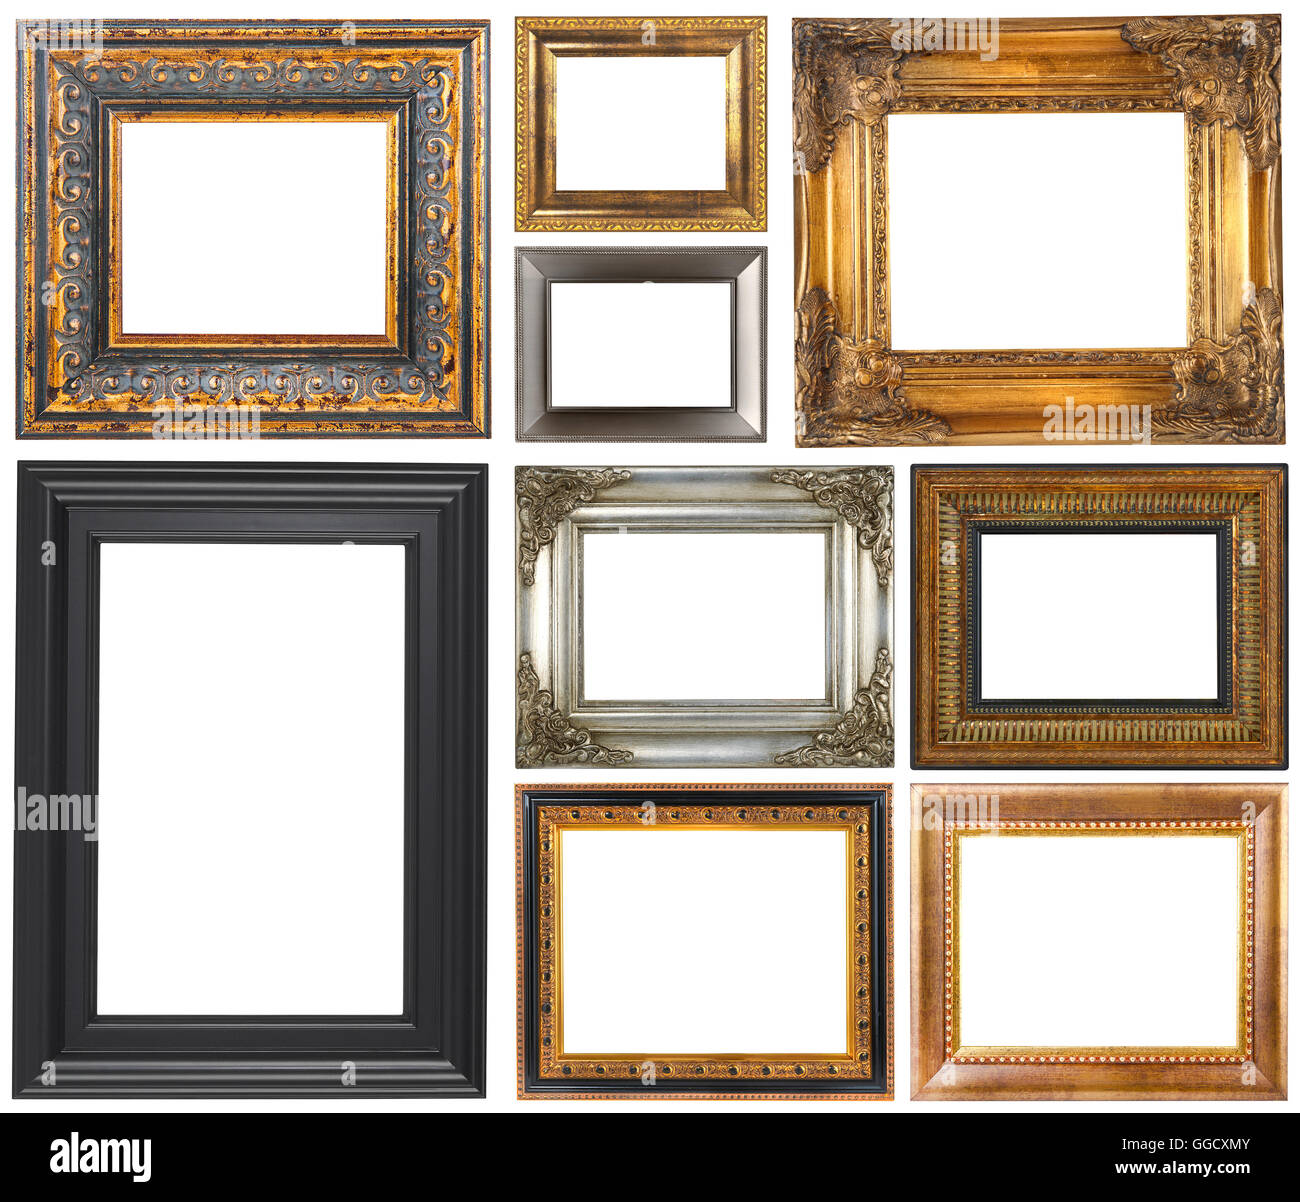 antique frames isolated on a white background stock image antique picture77 white